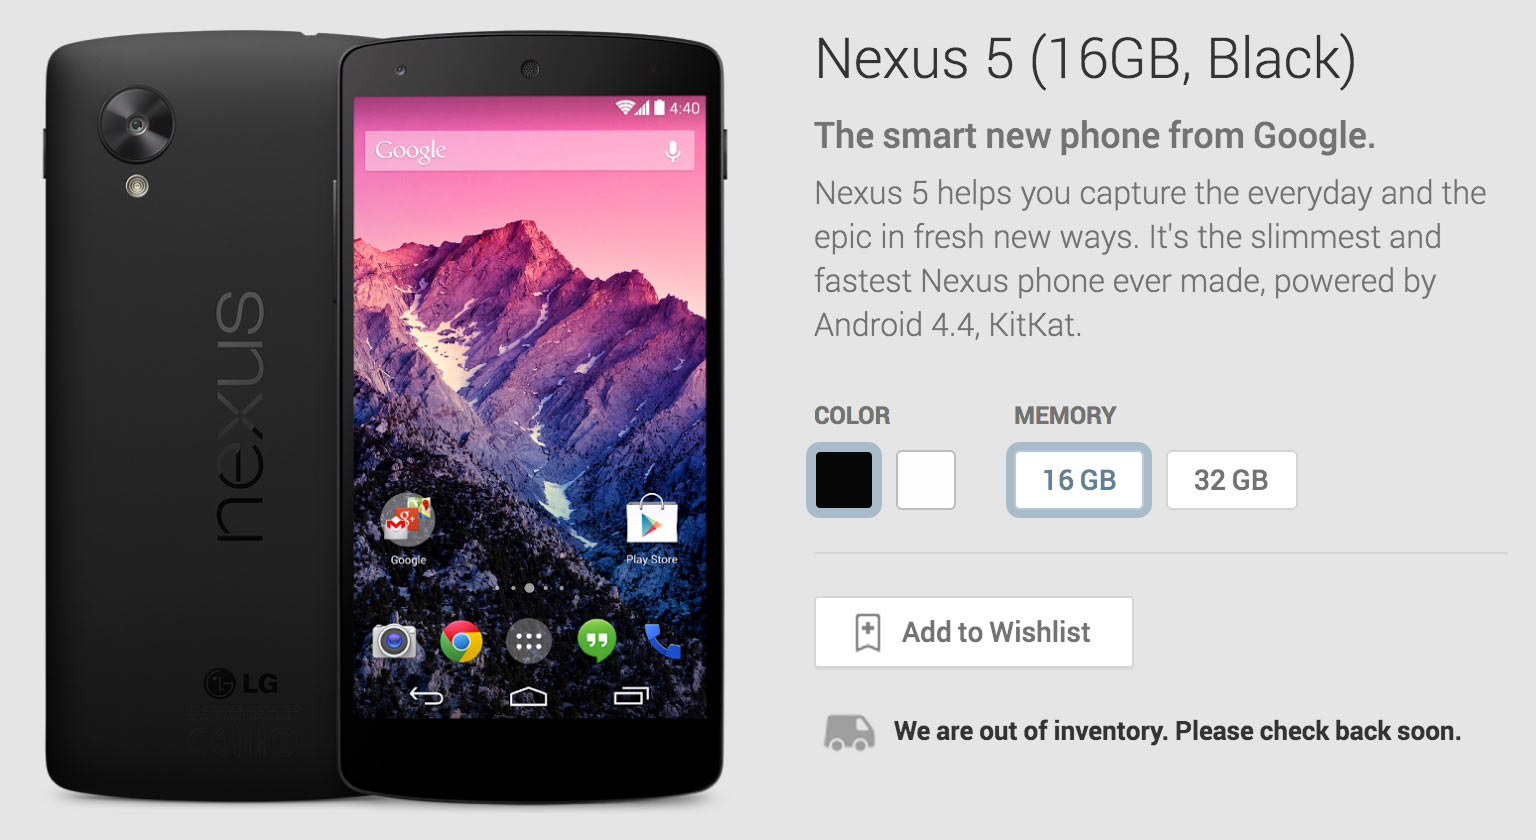 The black 16GB model of the Google Nexus 5 is out of inventory.